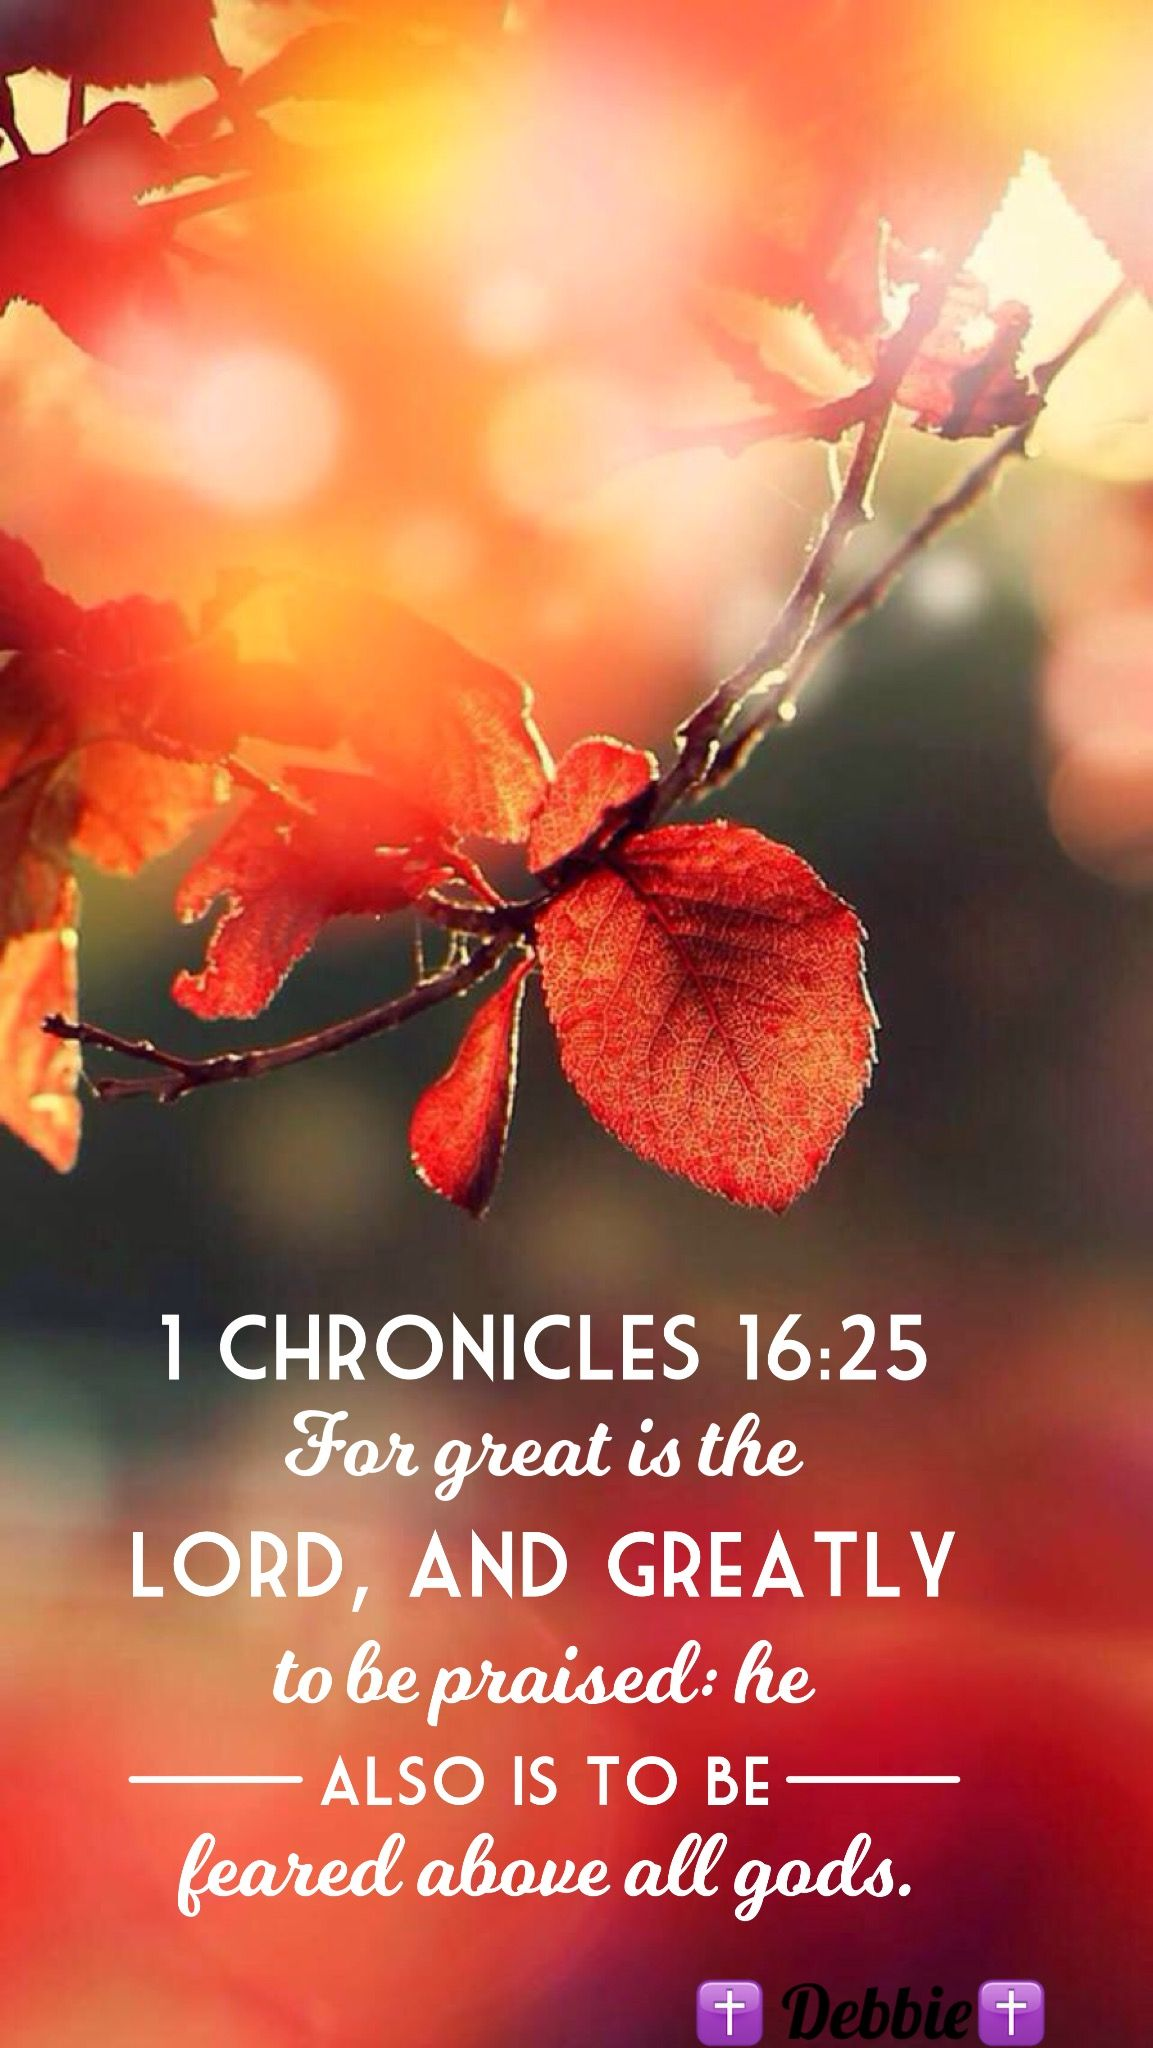 1 Chronicles 16:25 (KJV). | Scripture quotes, Scripture verses, Christian quotes